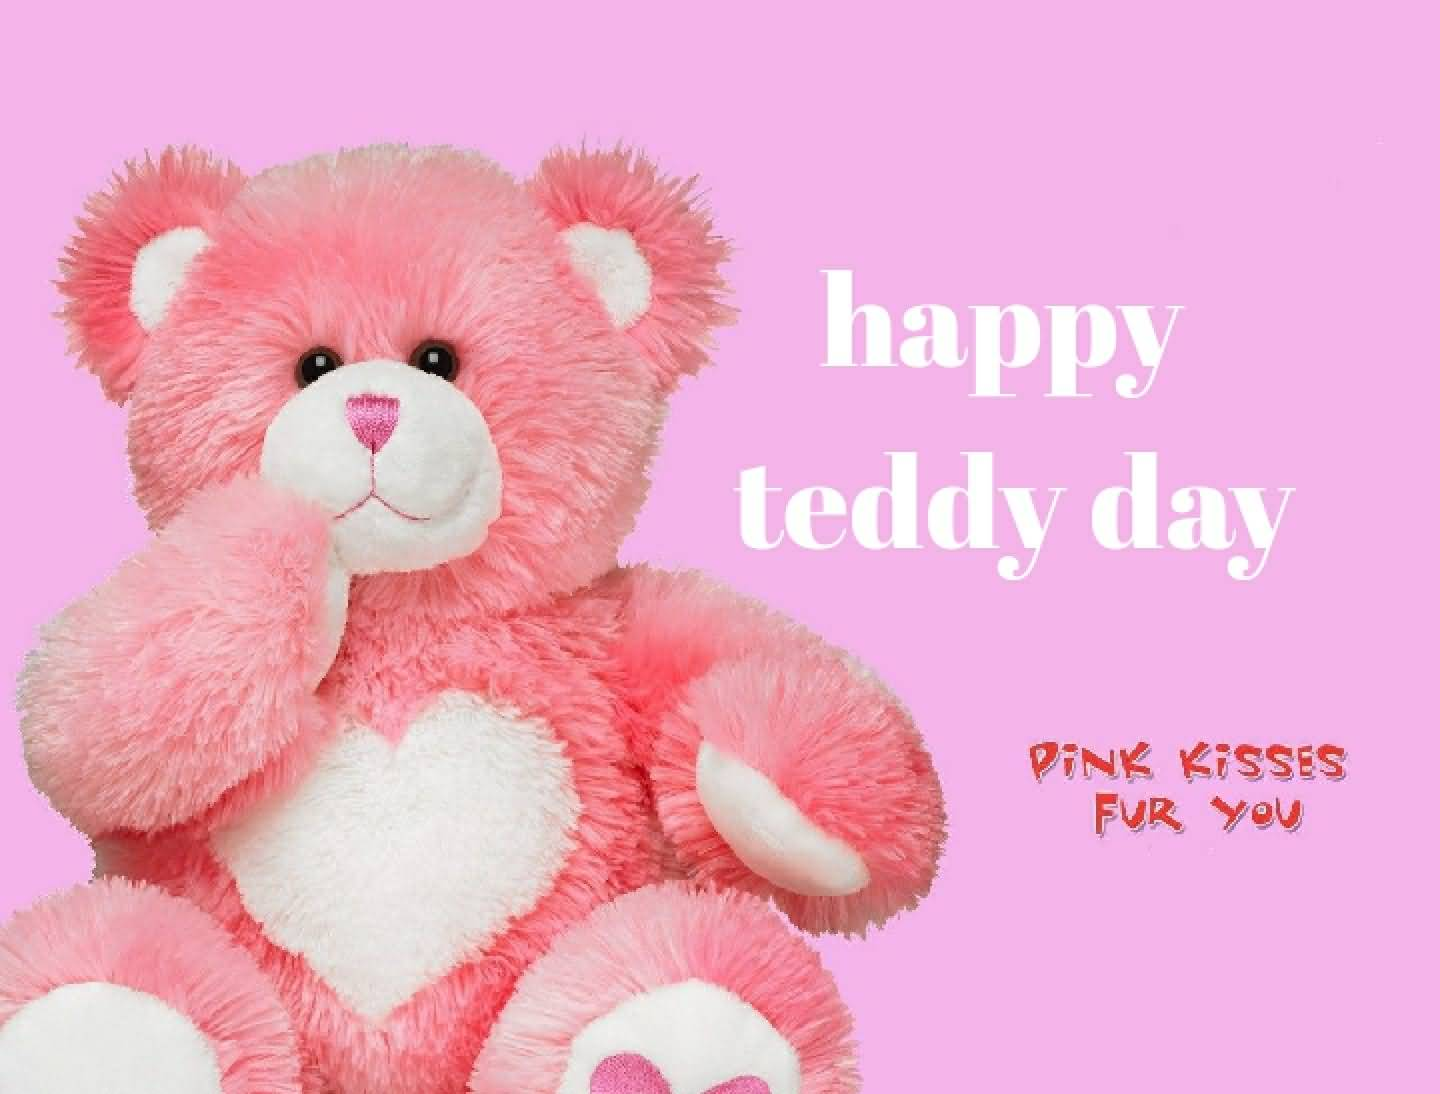 Happy Teddy Day pink kisses for you to your love with perfect teddy image